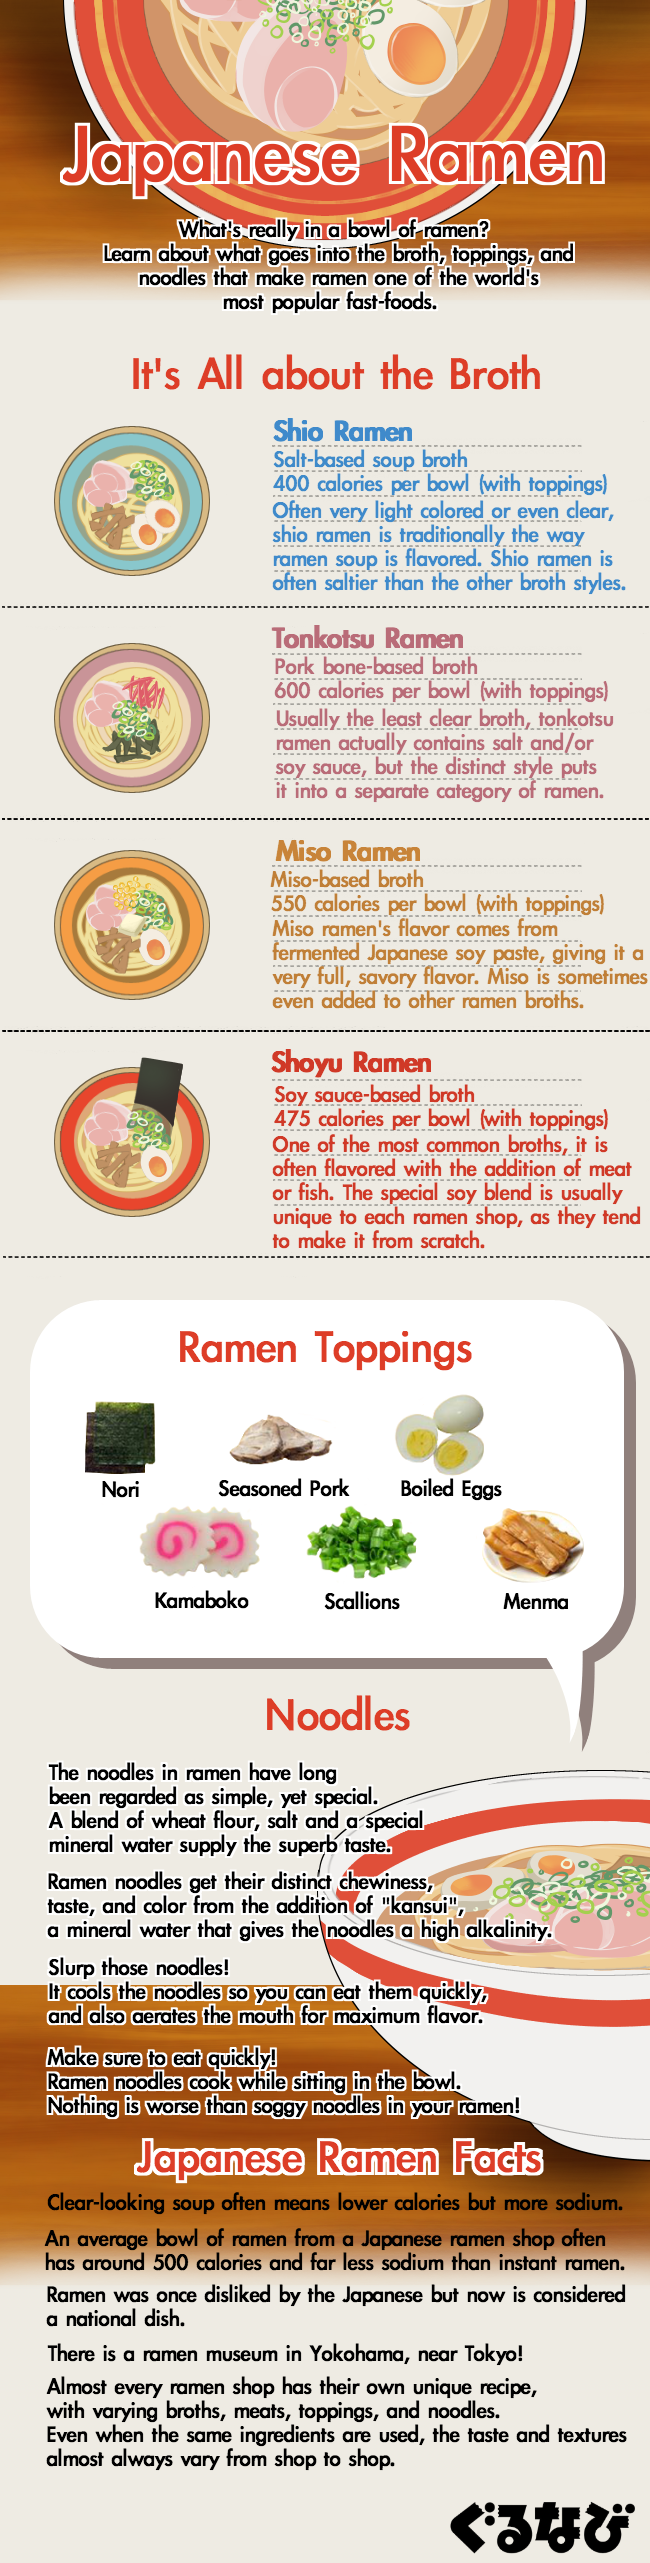 Japanese Ramen Guide: Top 4 Authentic Flavors You Must Try